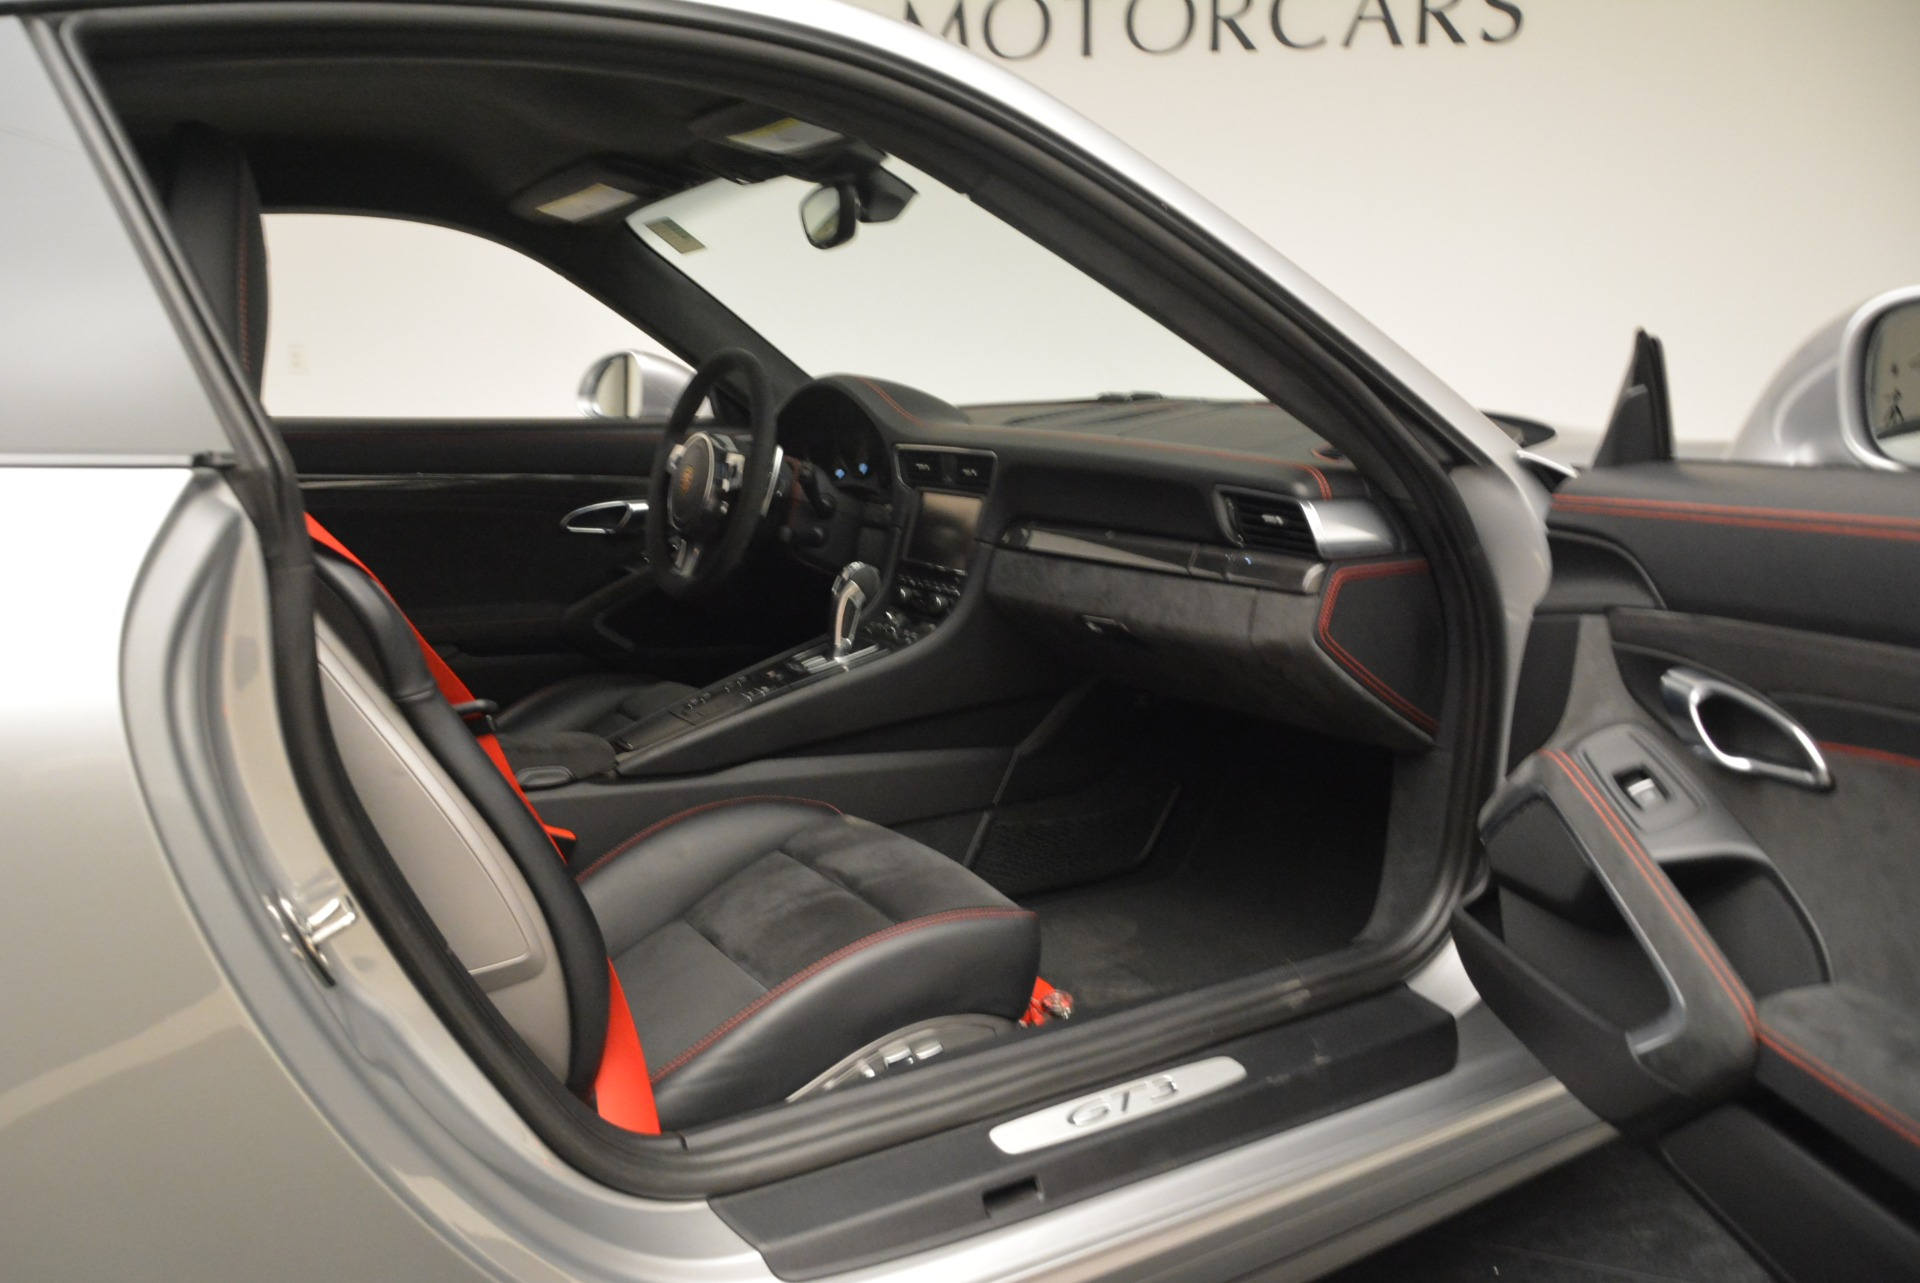 Used 2015 Porsche 911 GT3 For Sale In Greenwich, CT 2196_p25